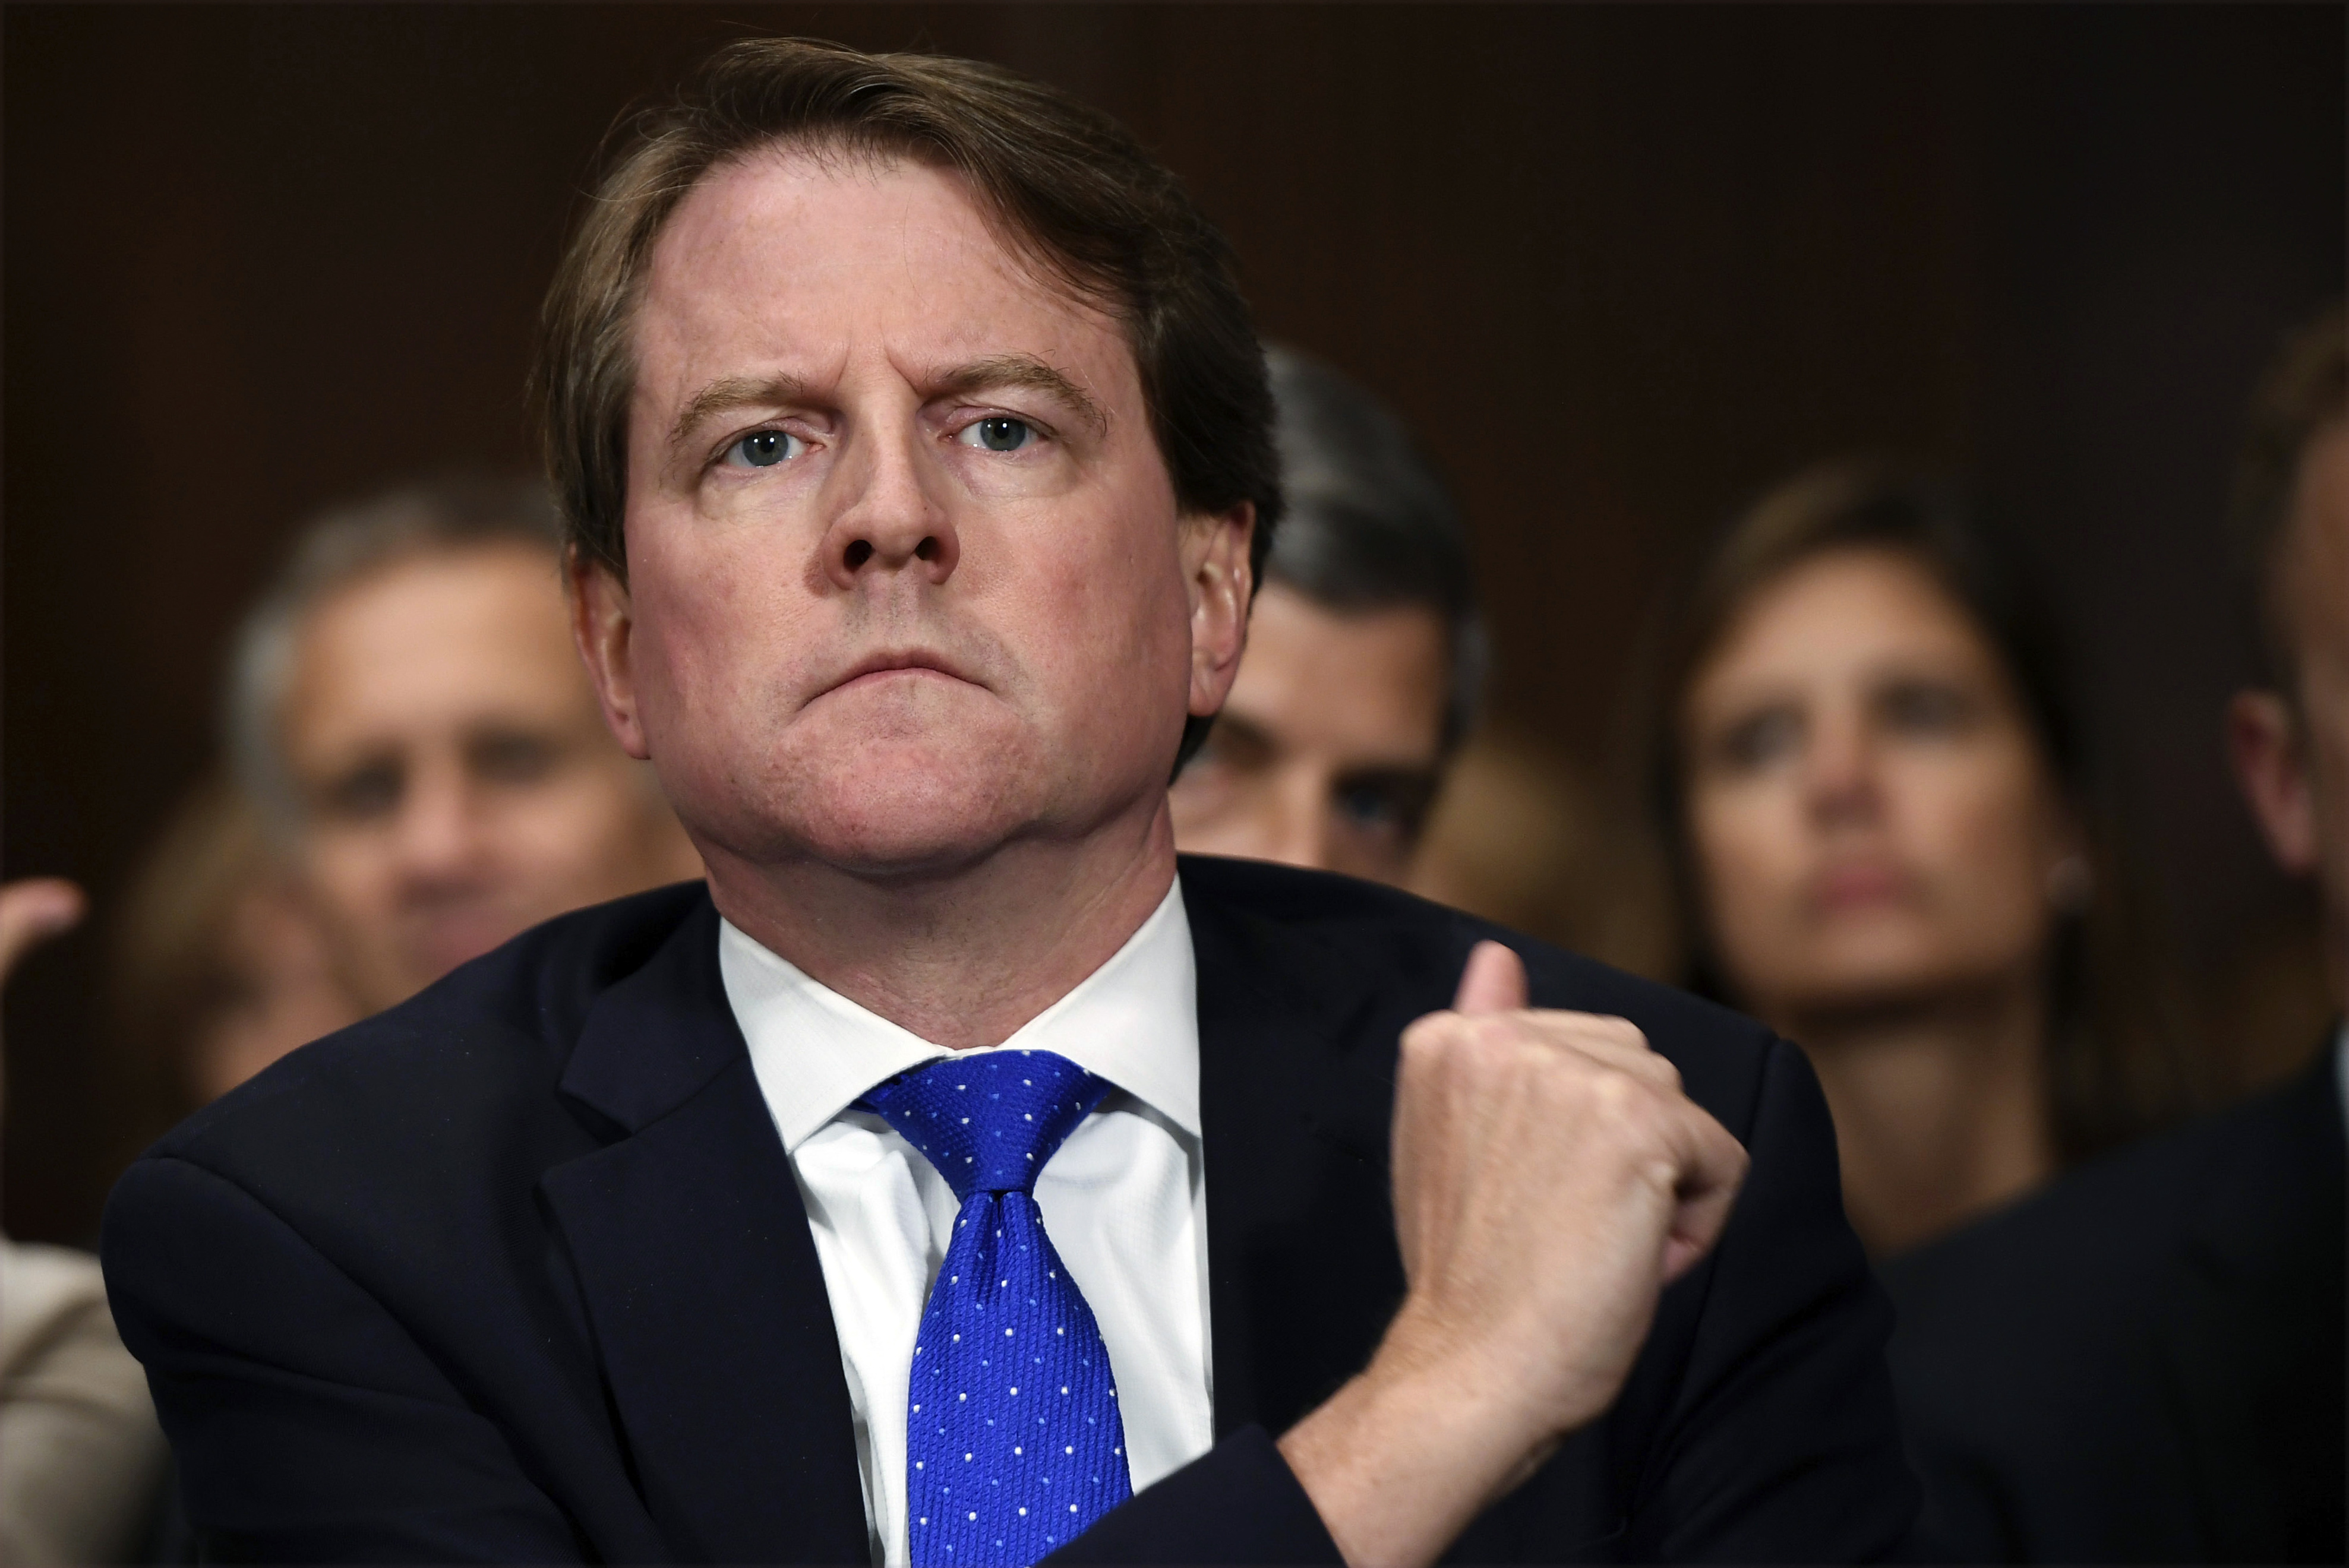 In this Sept. 27, 2018, file photo, then-White House counsel Don McGahn listens as Supreme court nominee Brett Kavanaugh testifies before the Senate Judiciary Committee on Capitol Hill in Washington.